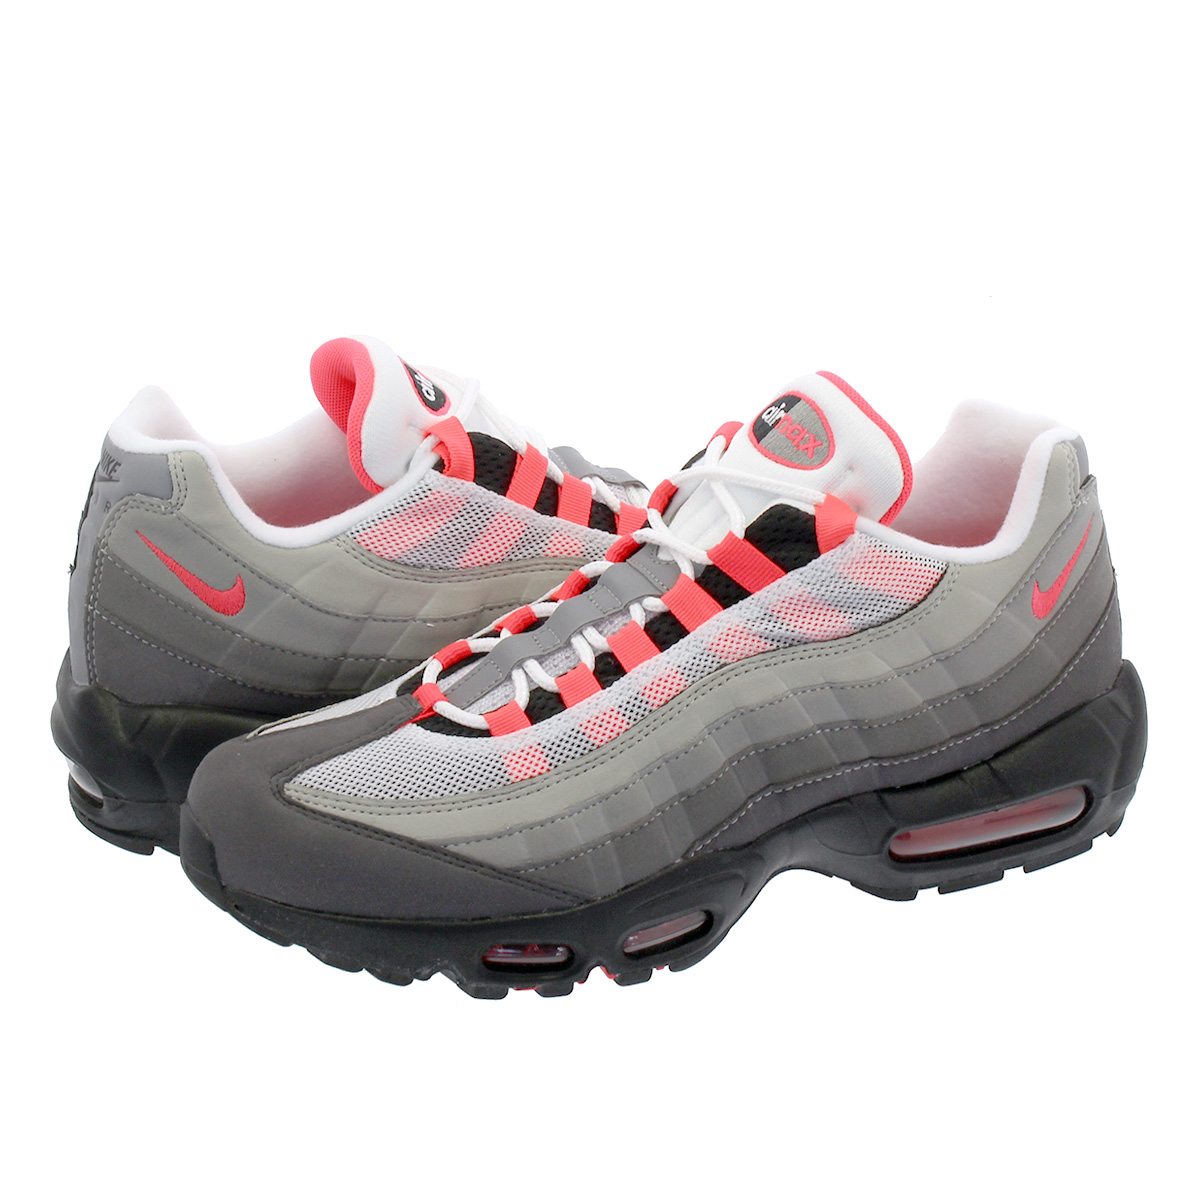 Nike Air Max 95 OG (White Solar Red) AT2865 100